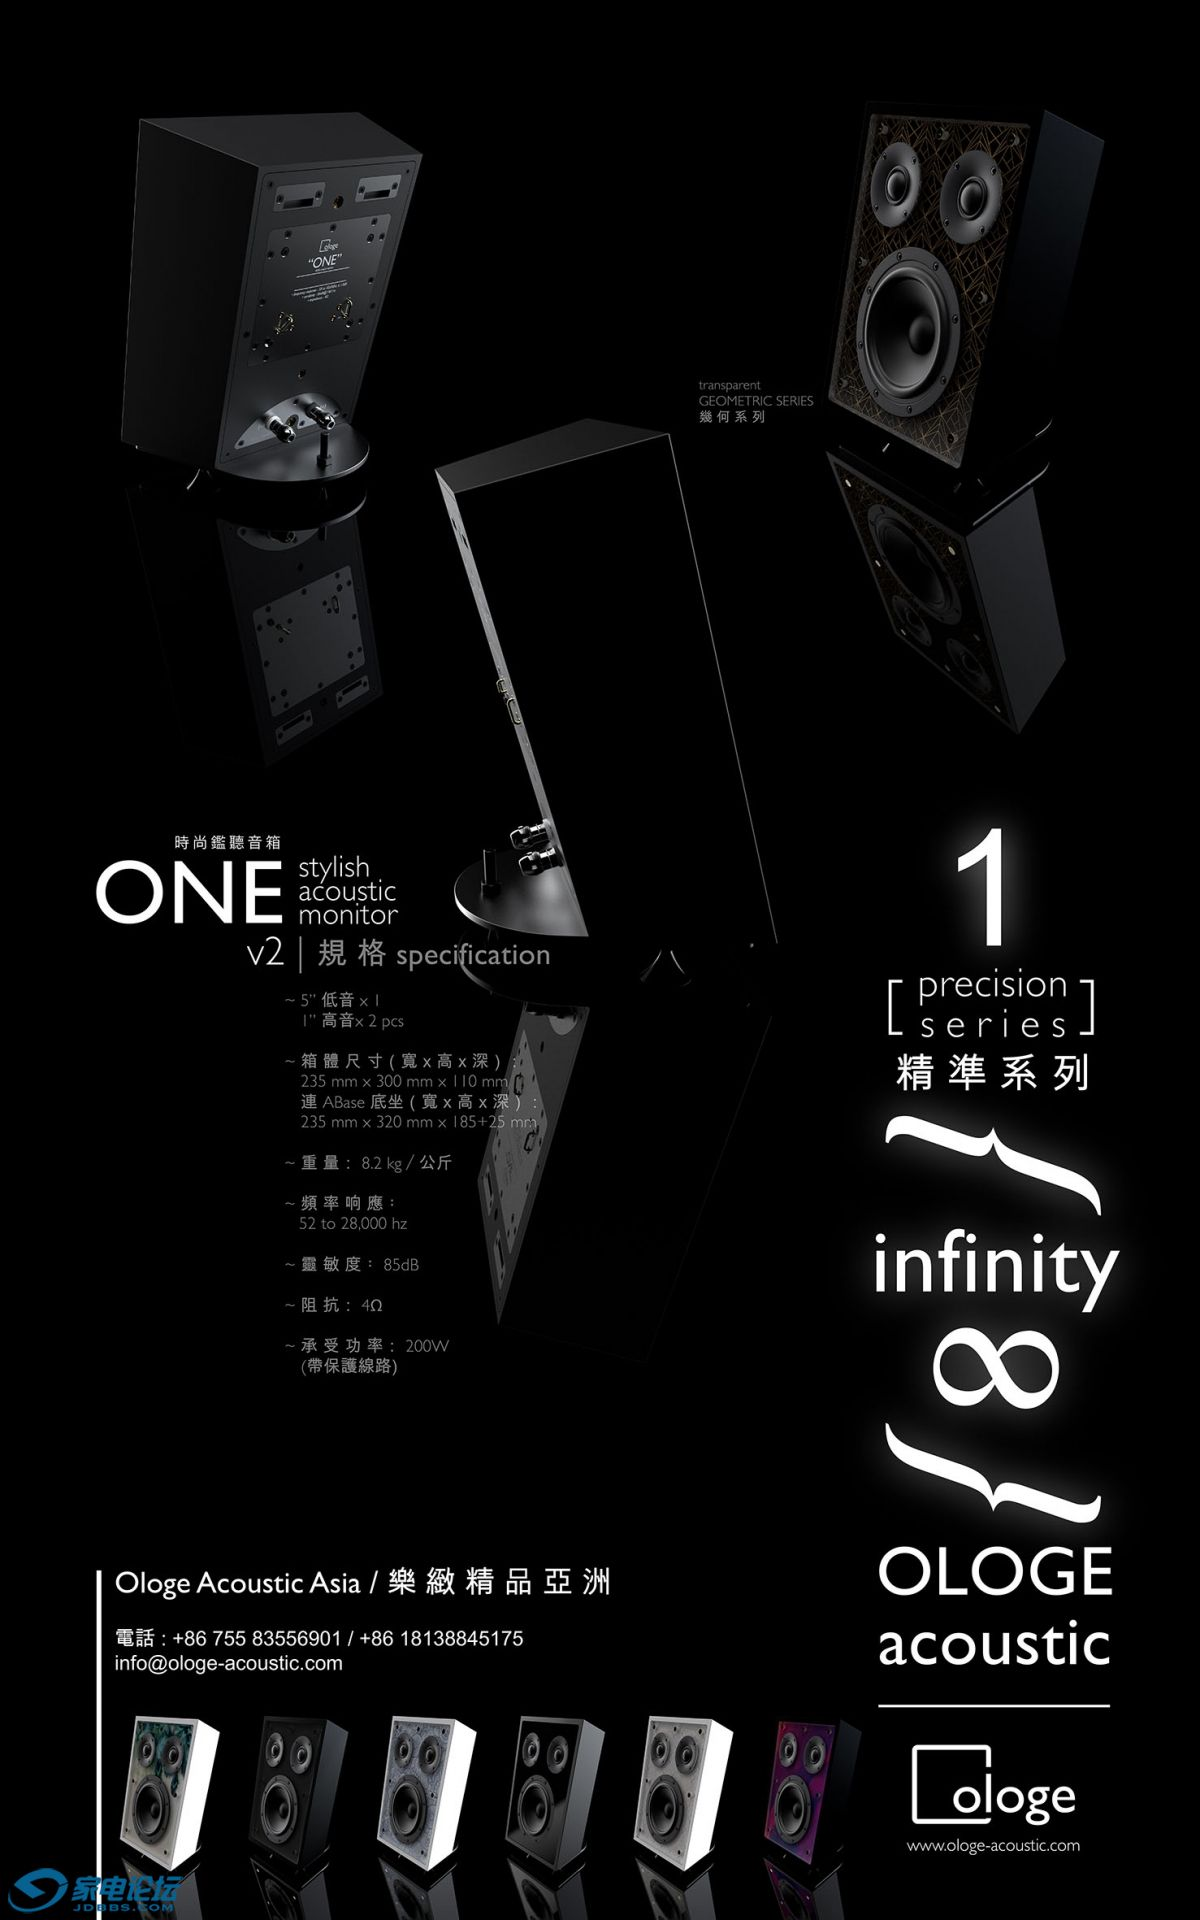 infinity layout - chinese-12.jpg